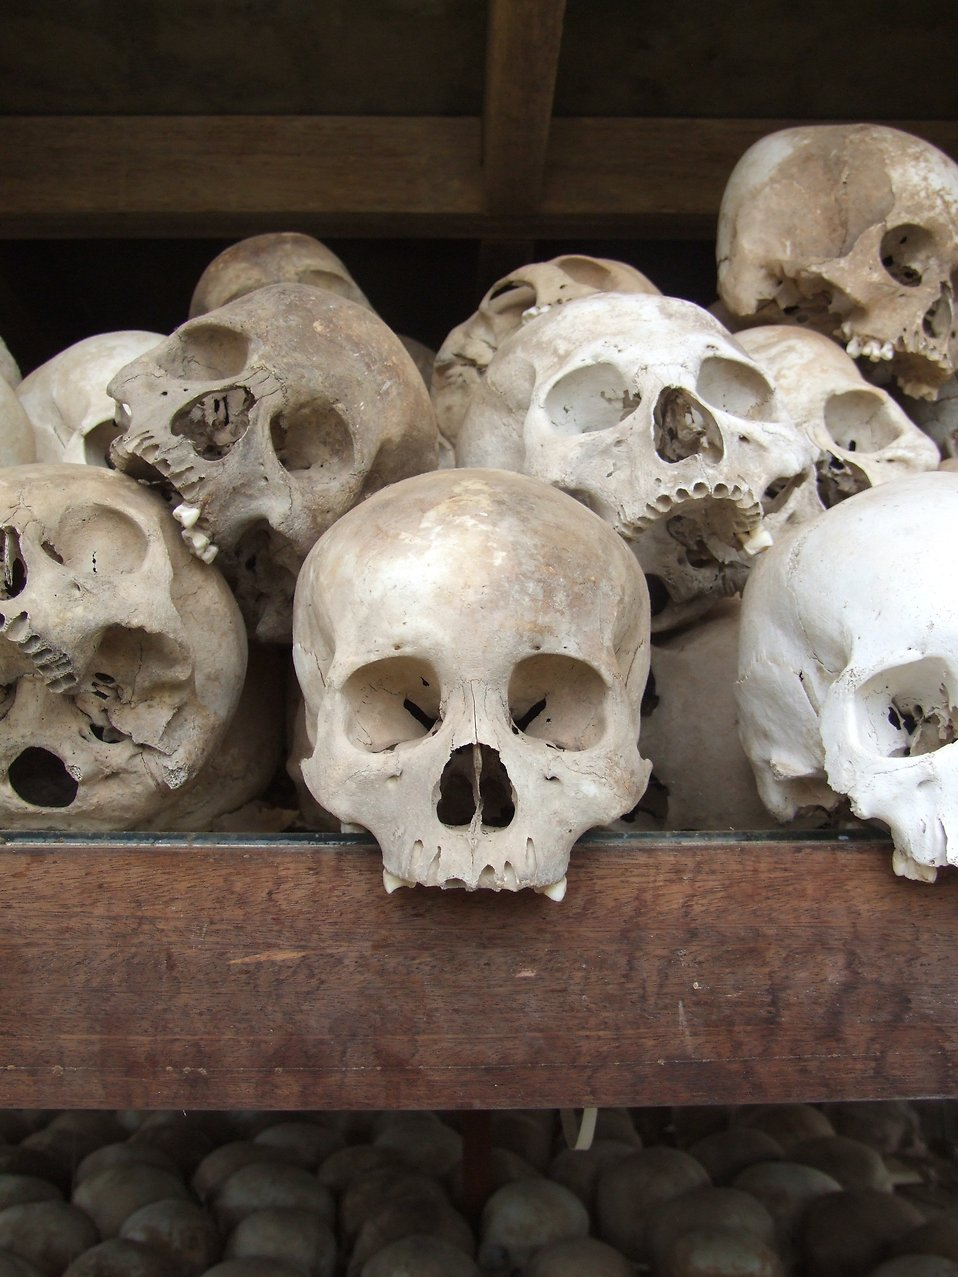 Skulls from the stupa memorial at the killing fields of Choeung Ek, near Phnom Penh, Cambodia : Free Stock Photo